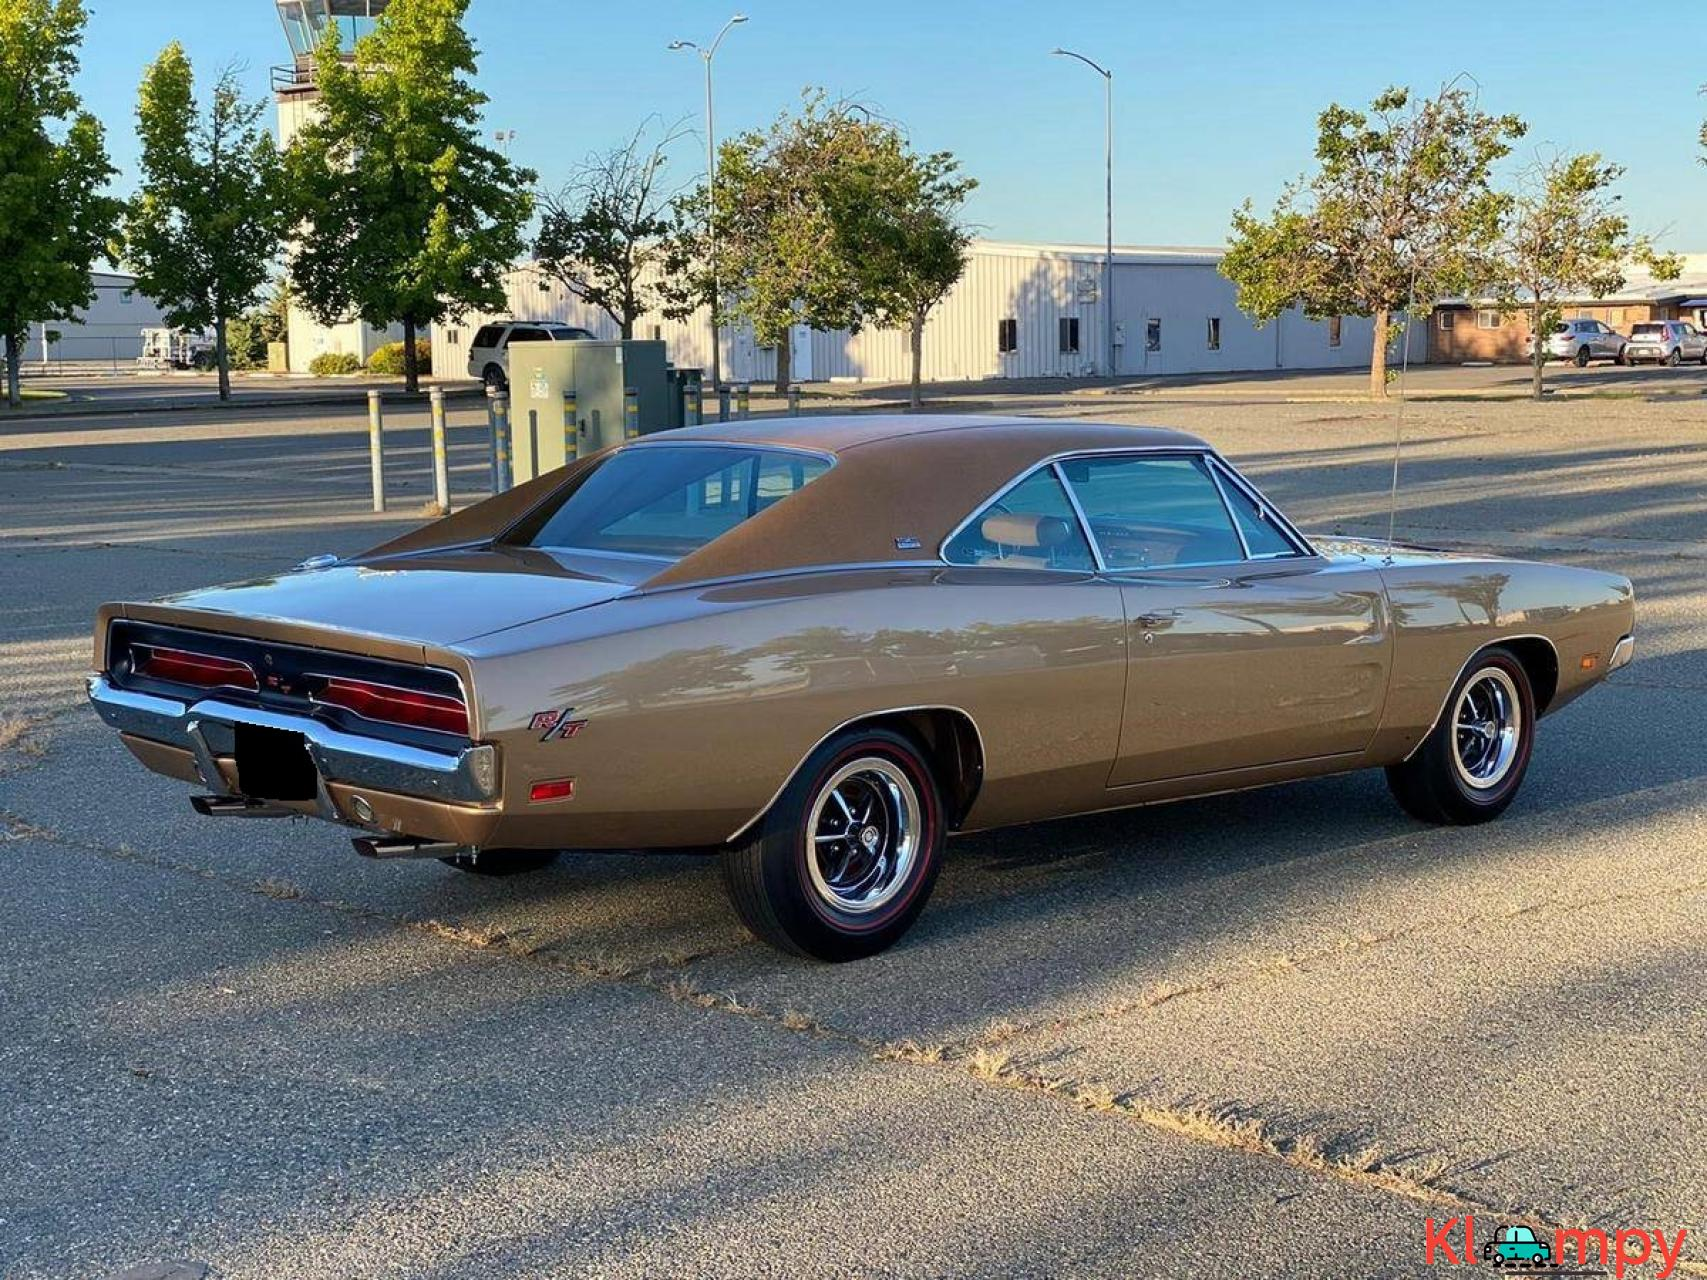 1969 Dodge Charger RT SE 440 375hp High Performance - 3/20